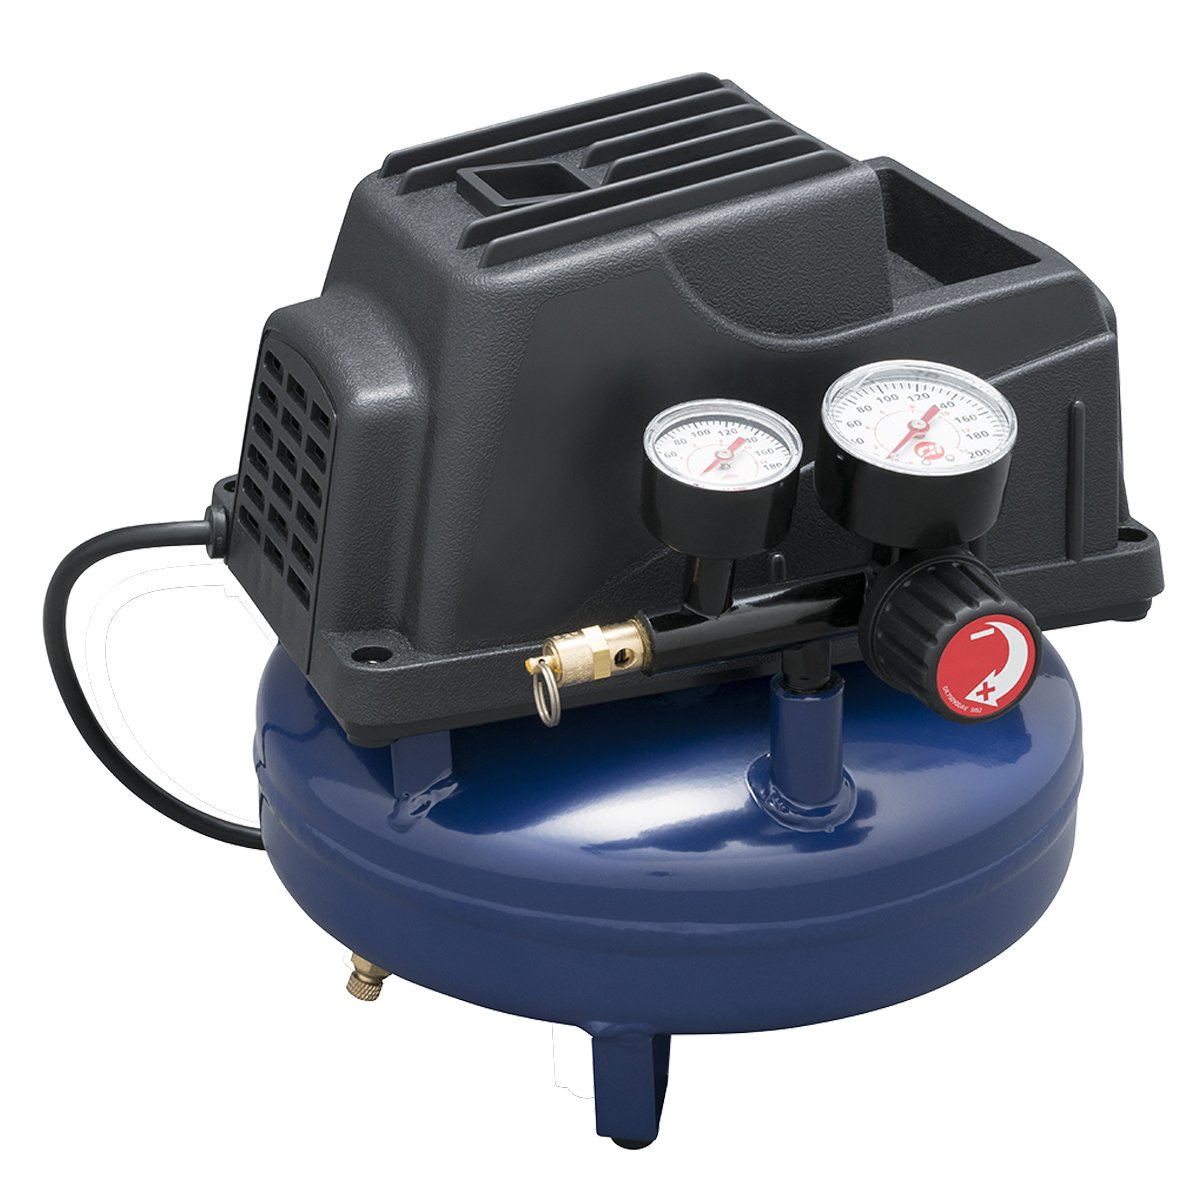 Air Compressor, 1 Gallon, Pancake, Oilless Pump, 110 PSI w/ Recoil Air Hose  & Inflation Kit (Campbell Hausfeld FP2028) - Pancake Tank Air Compressors  ...